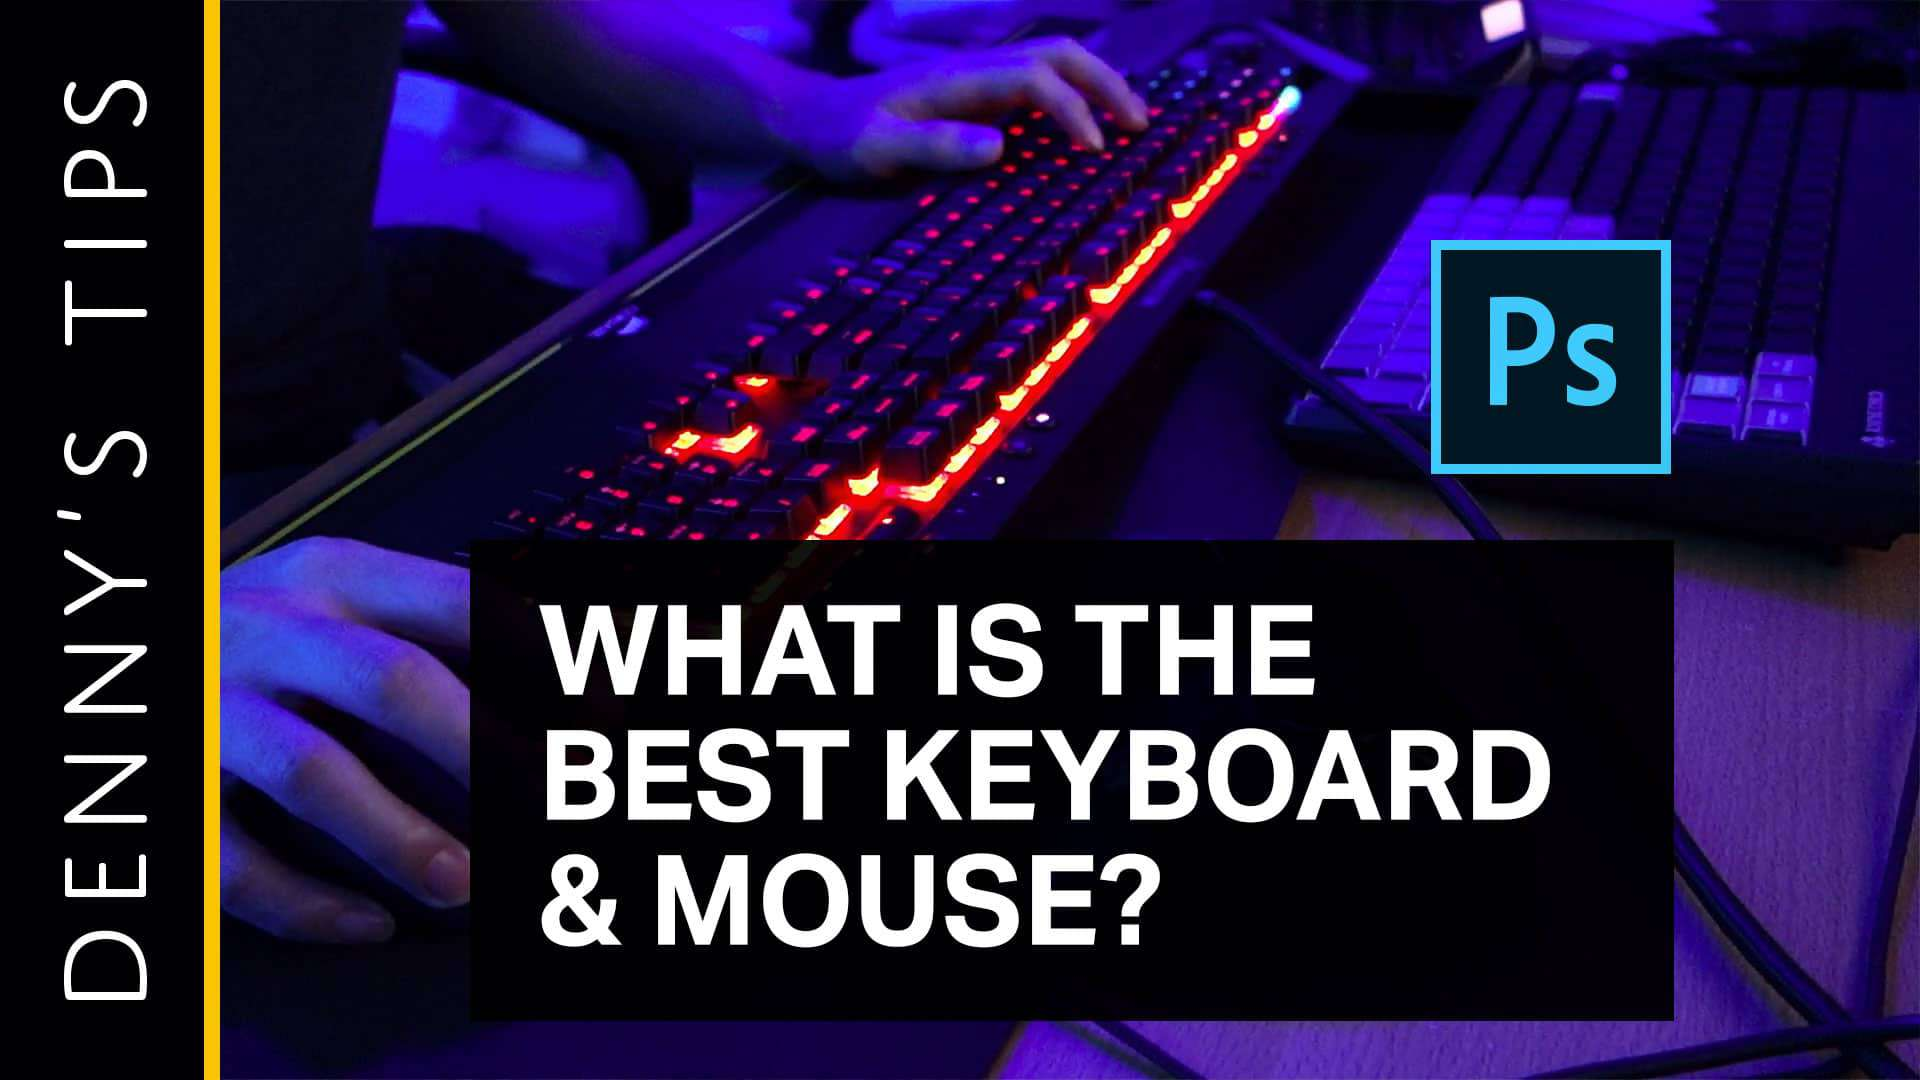 The best keyboard and mouse for photoshop photoshop tutorials baditri Image collections